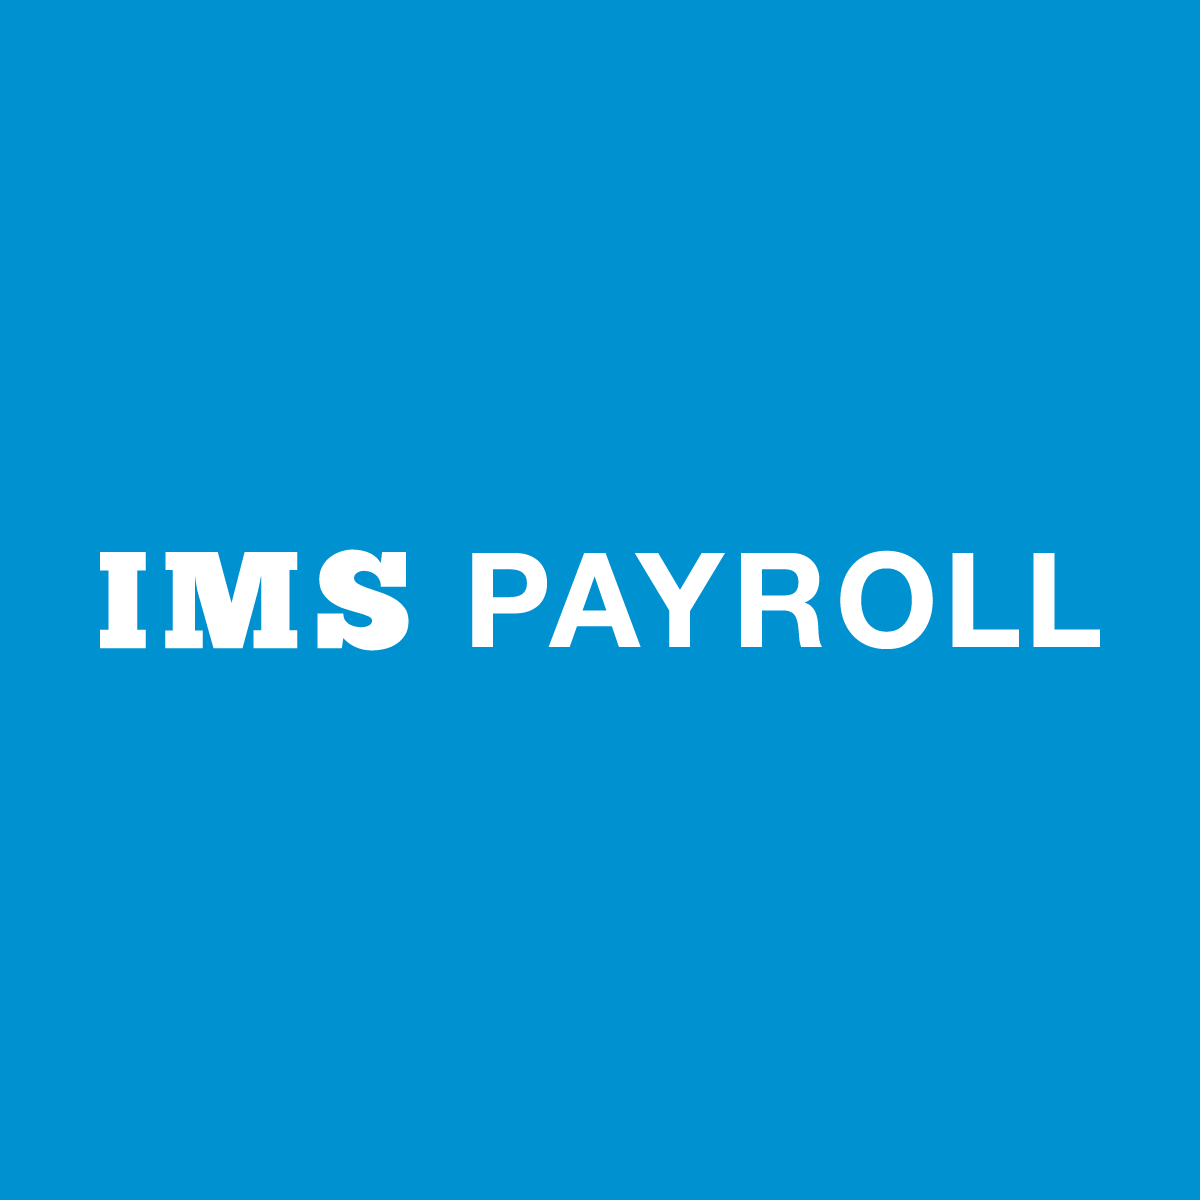 Ims payroll.png